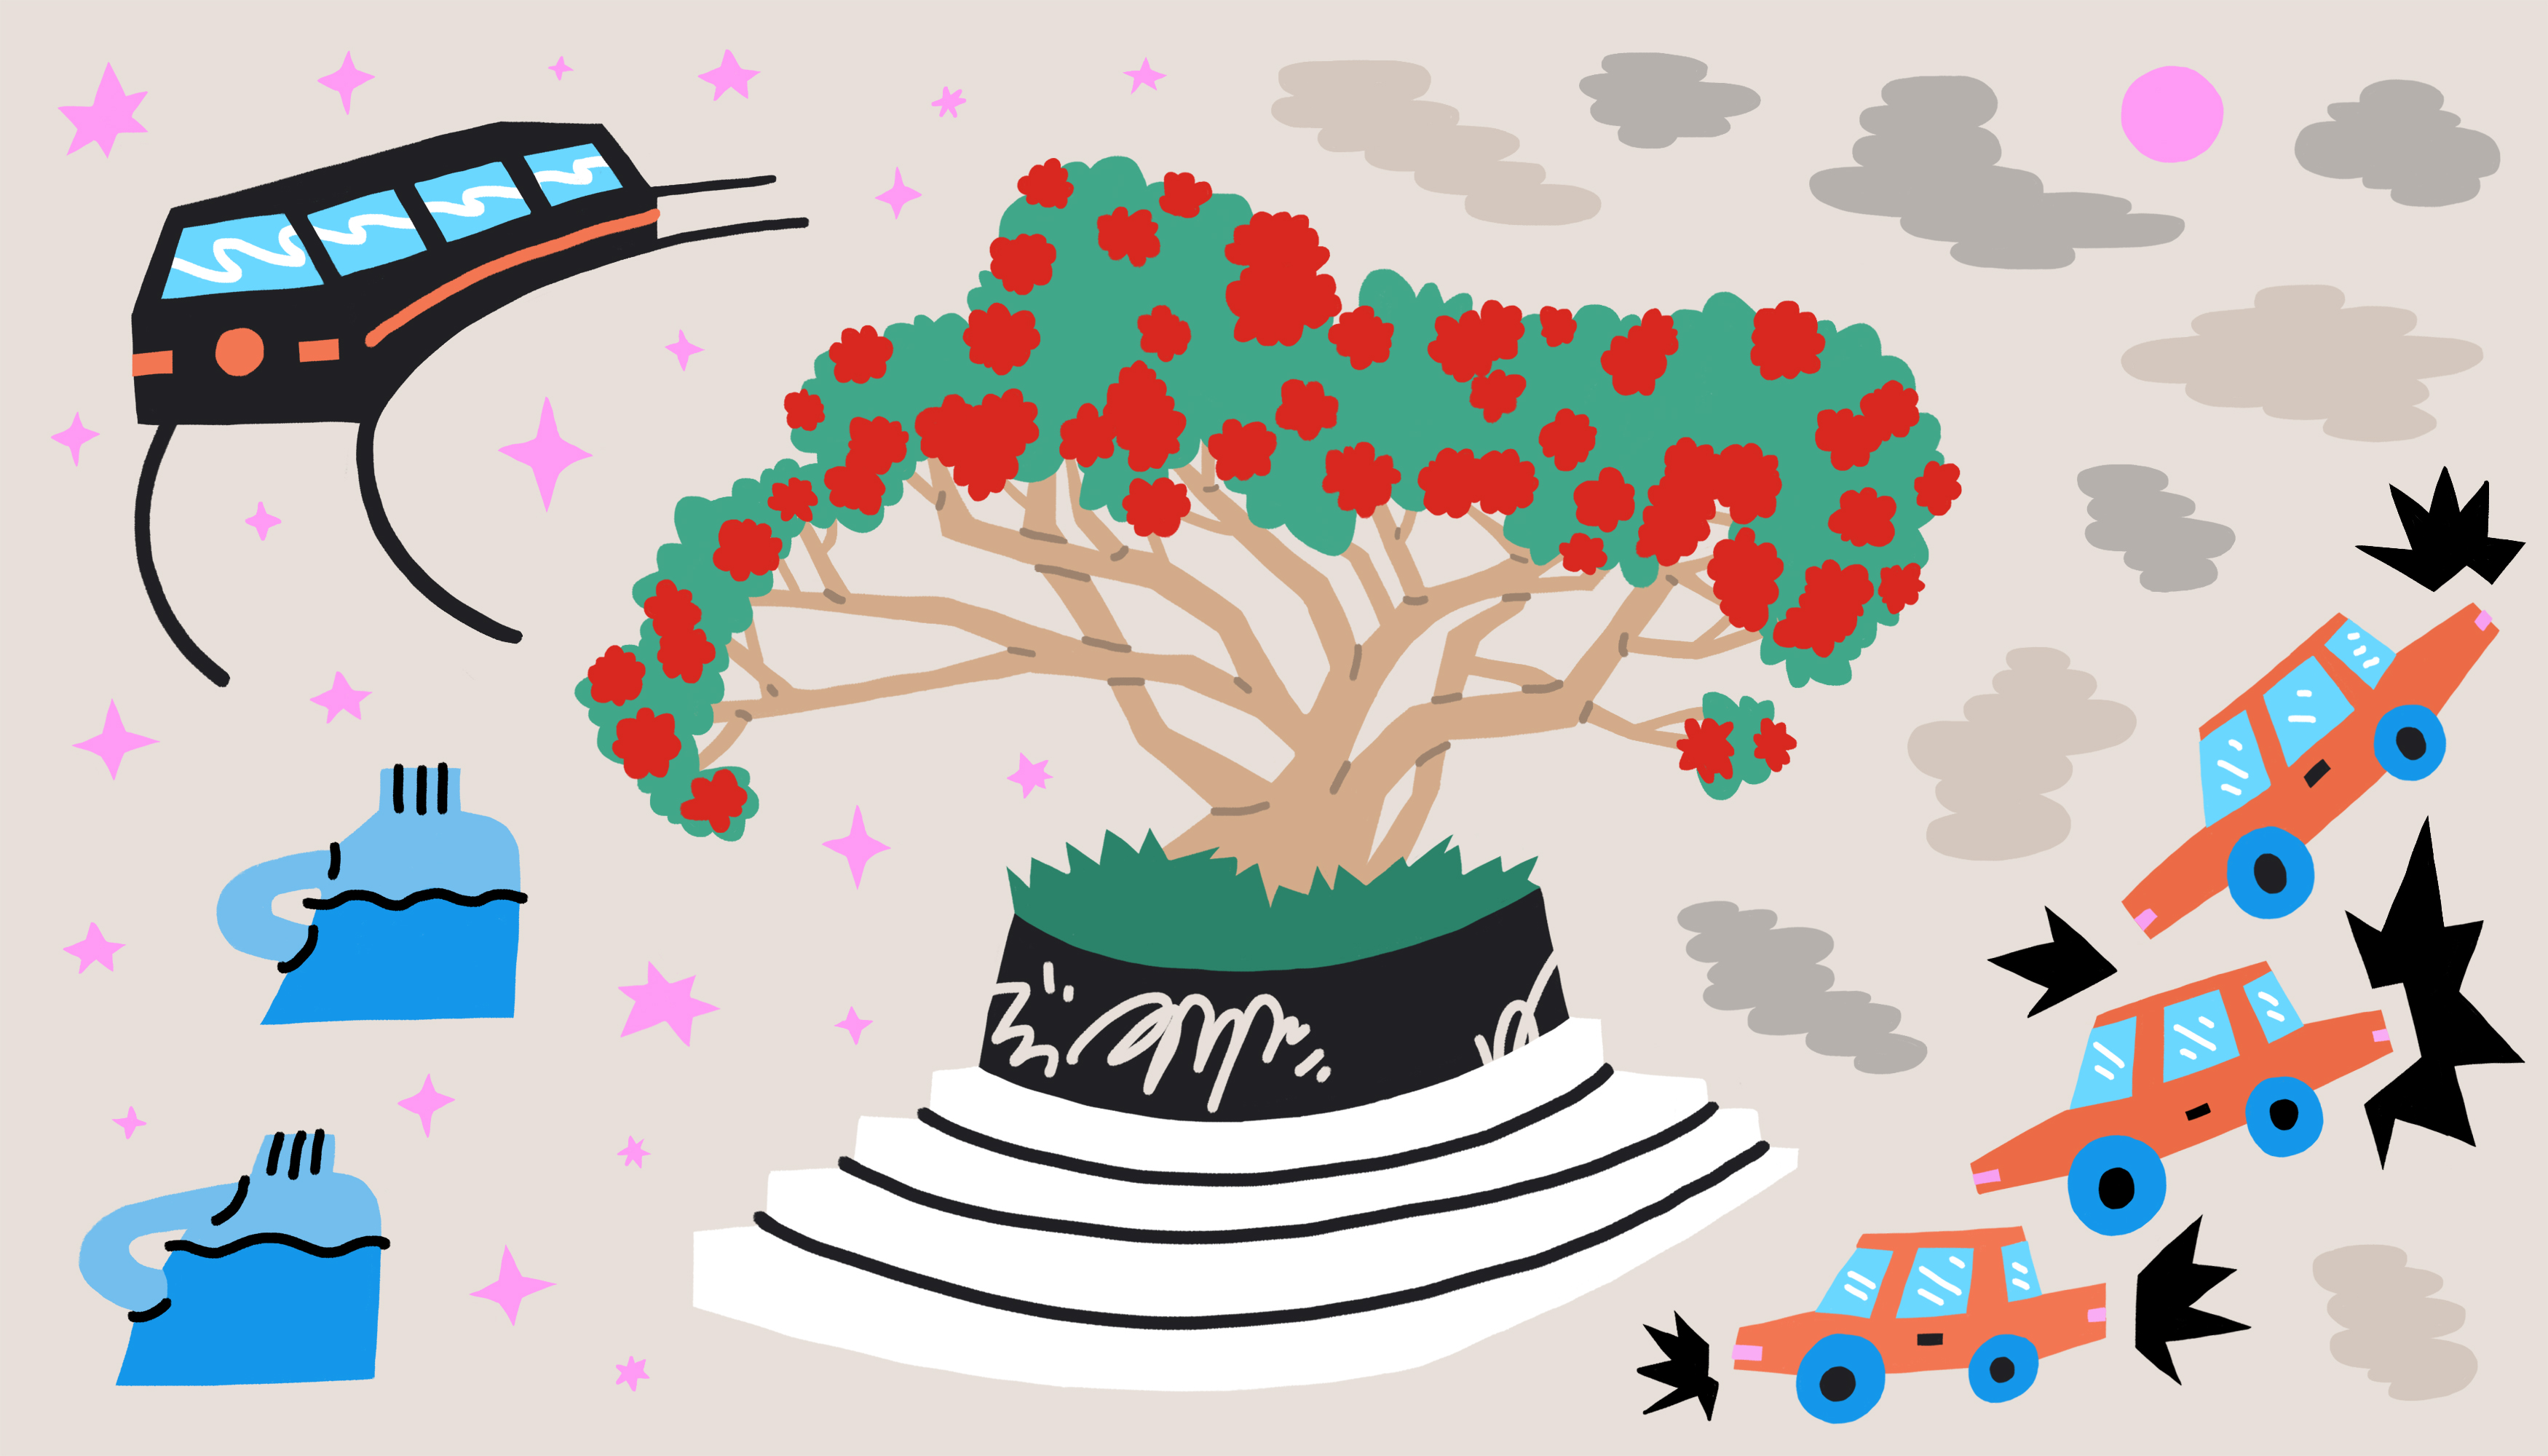 A blooming coral tree sits front and center in a graffiti-covered, round, concrete planter. There are vignettes in each corner, a light rail train, smog, jugs of water and a hectic traffic scene. Illustration.